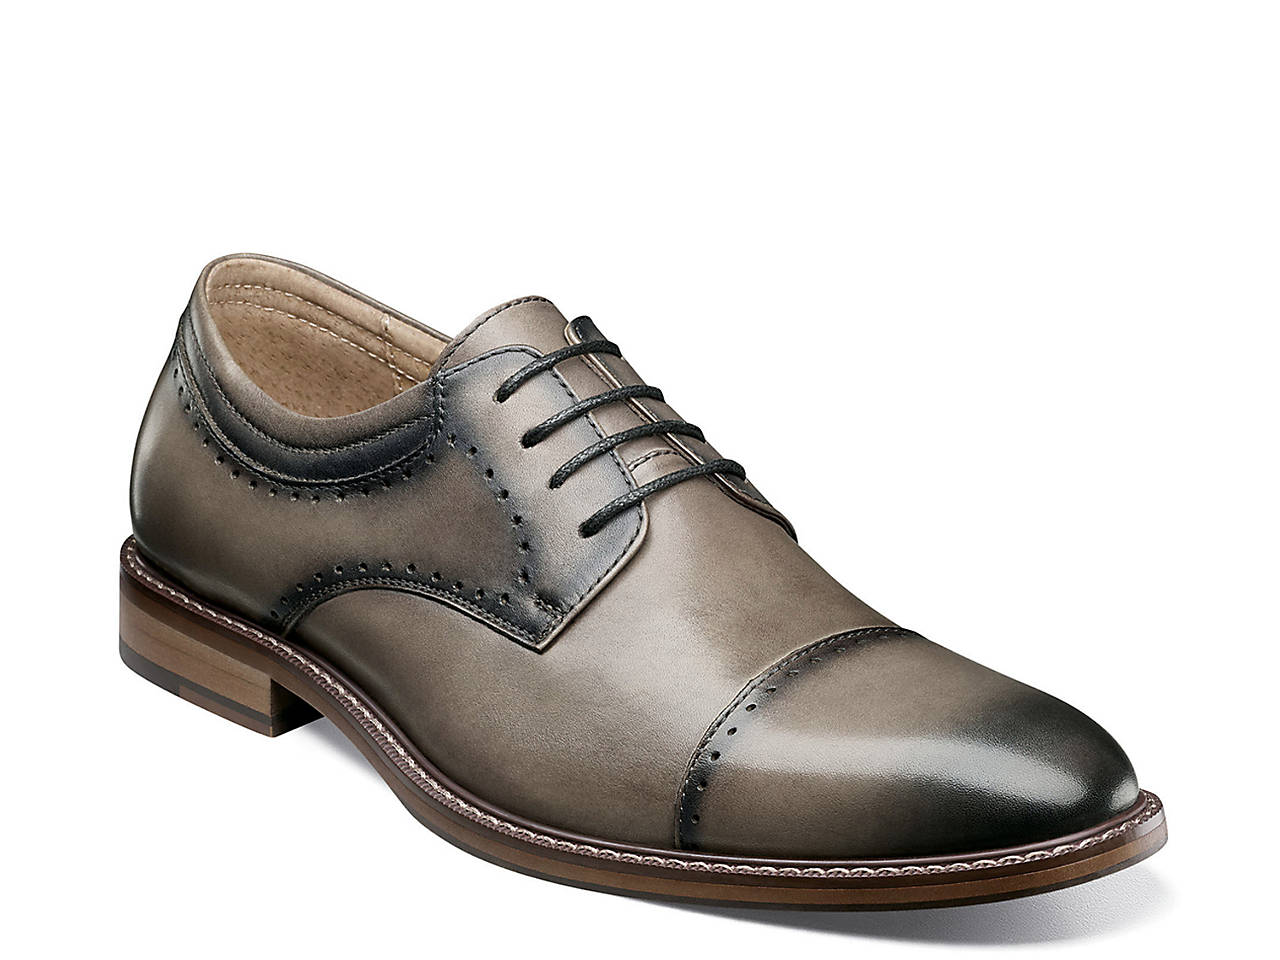 Flemming Cap Toe Oxford by Stacy Adams